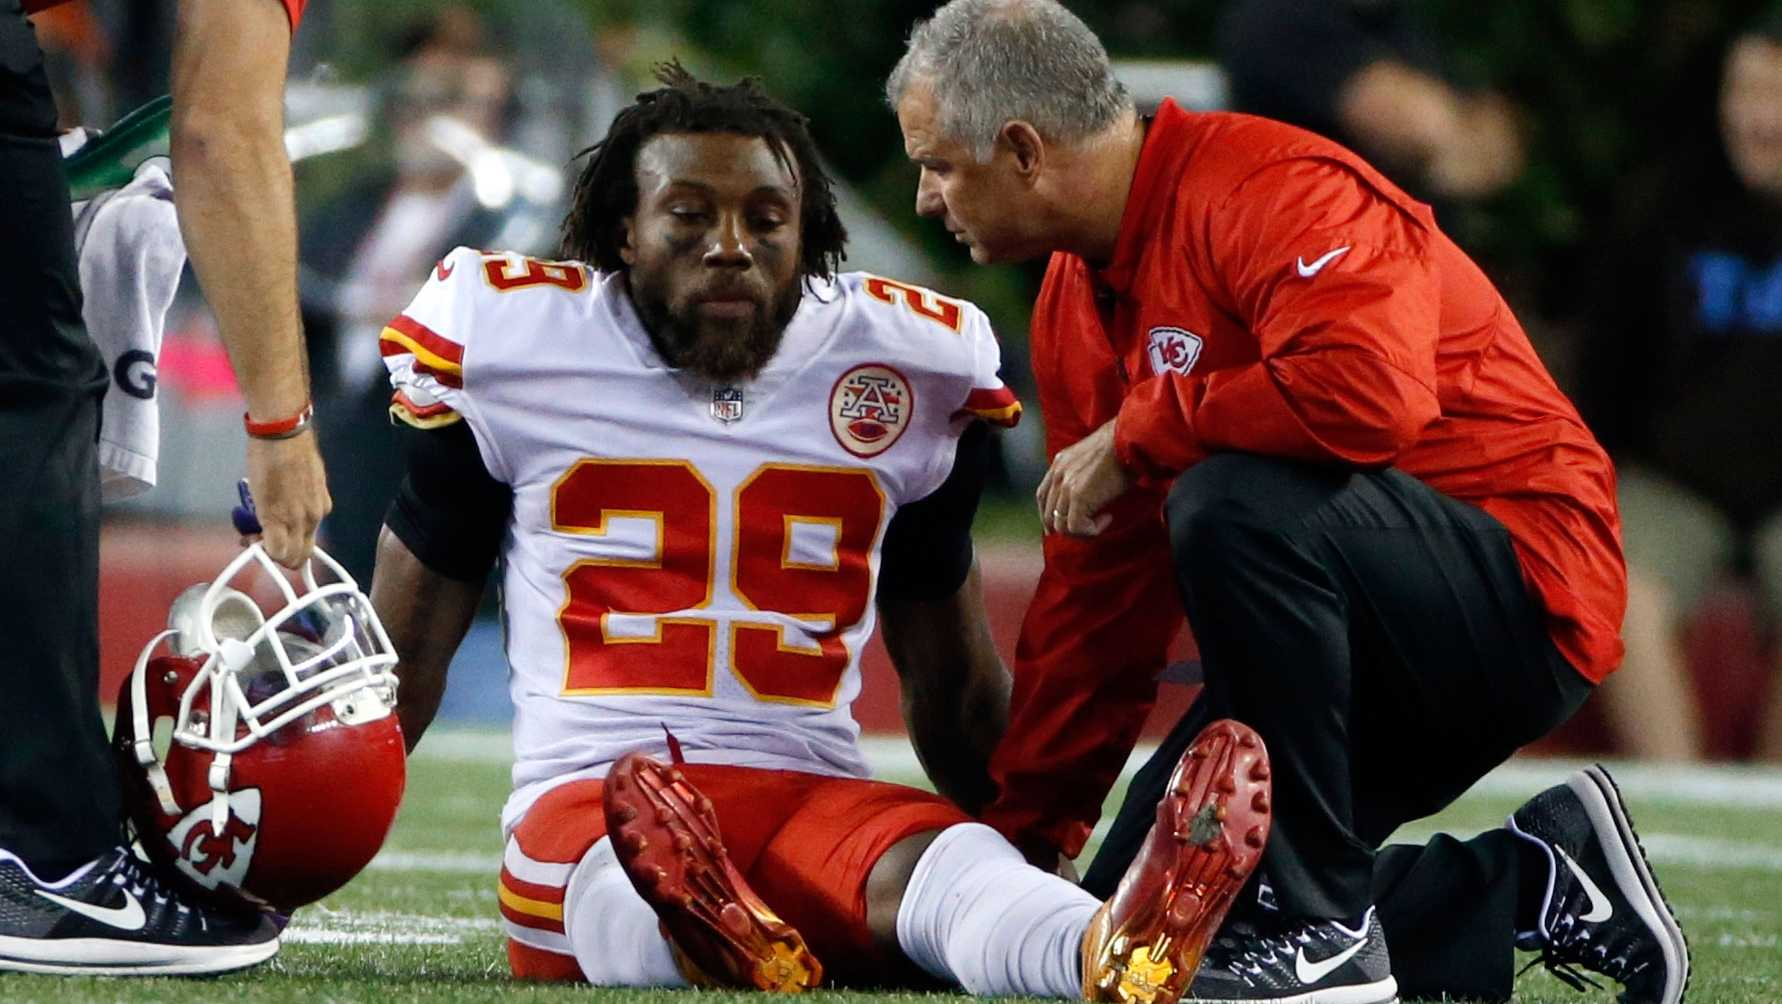 Kansas City Chiefs safety Eric Berry receives attention on the field after an injury during the second half of an NFL football game against the New England Patriots, Thursday, Sept. 7, 2017, in Foxborough, Mass. (AP Photo/Michael Dwyer)